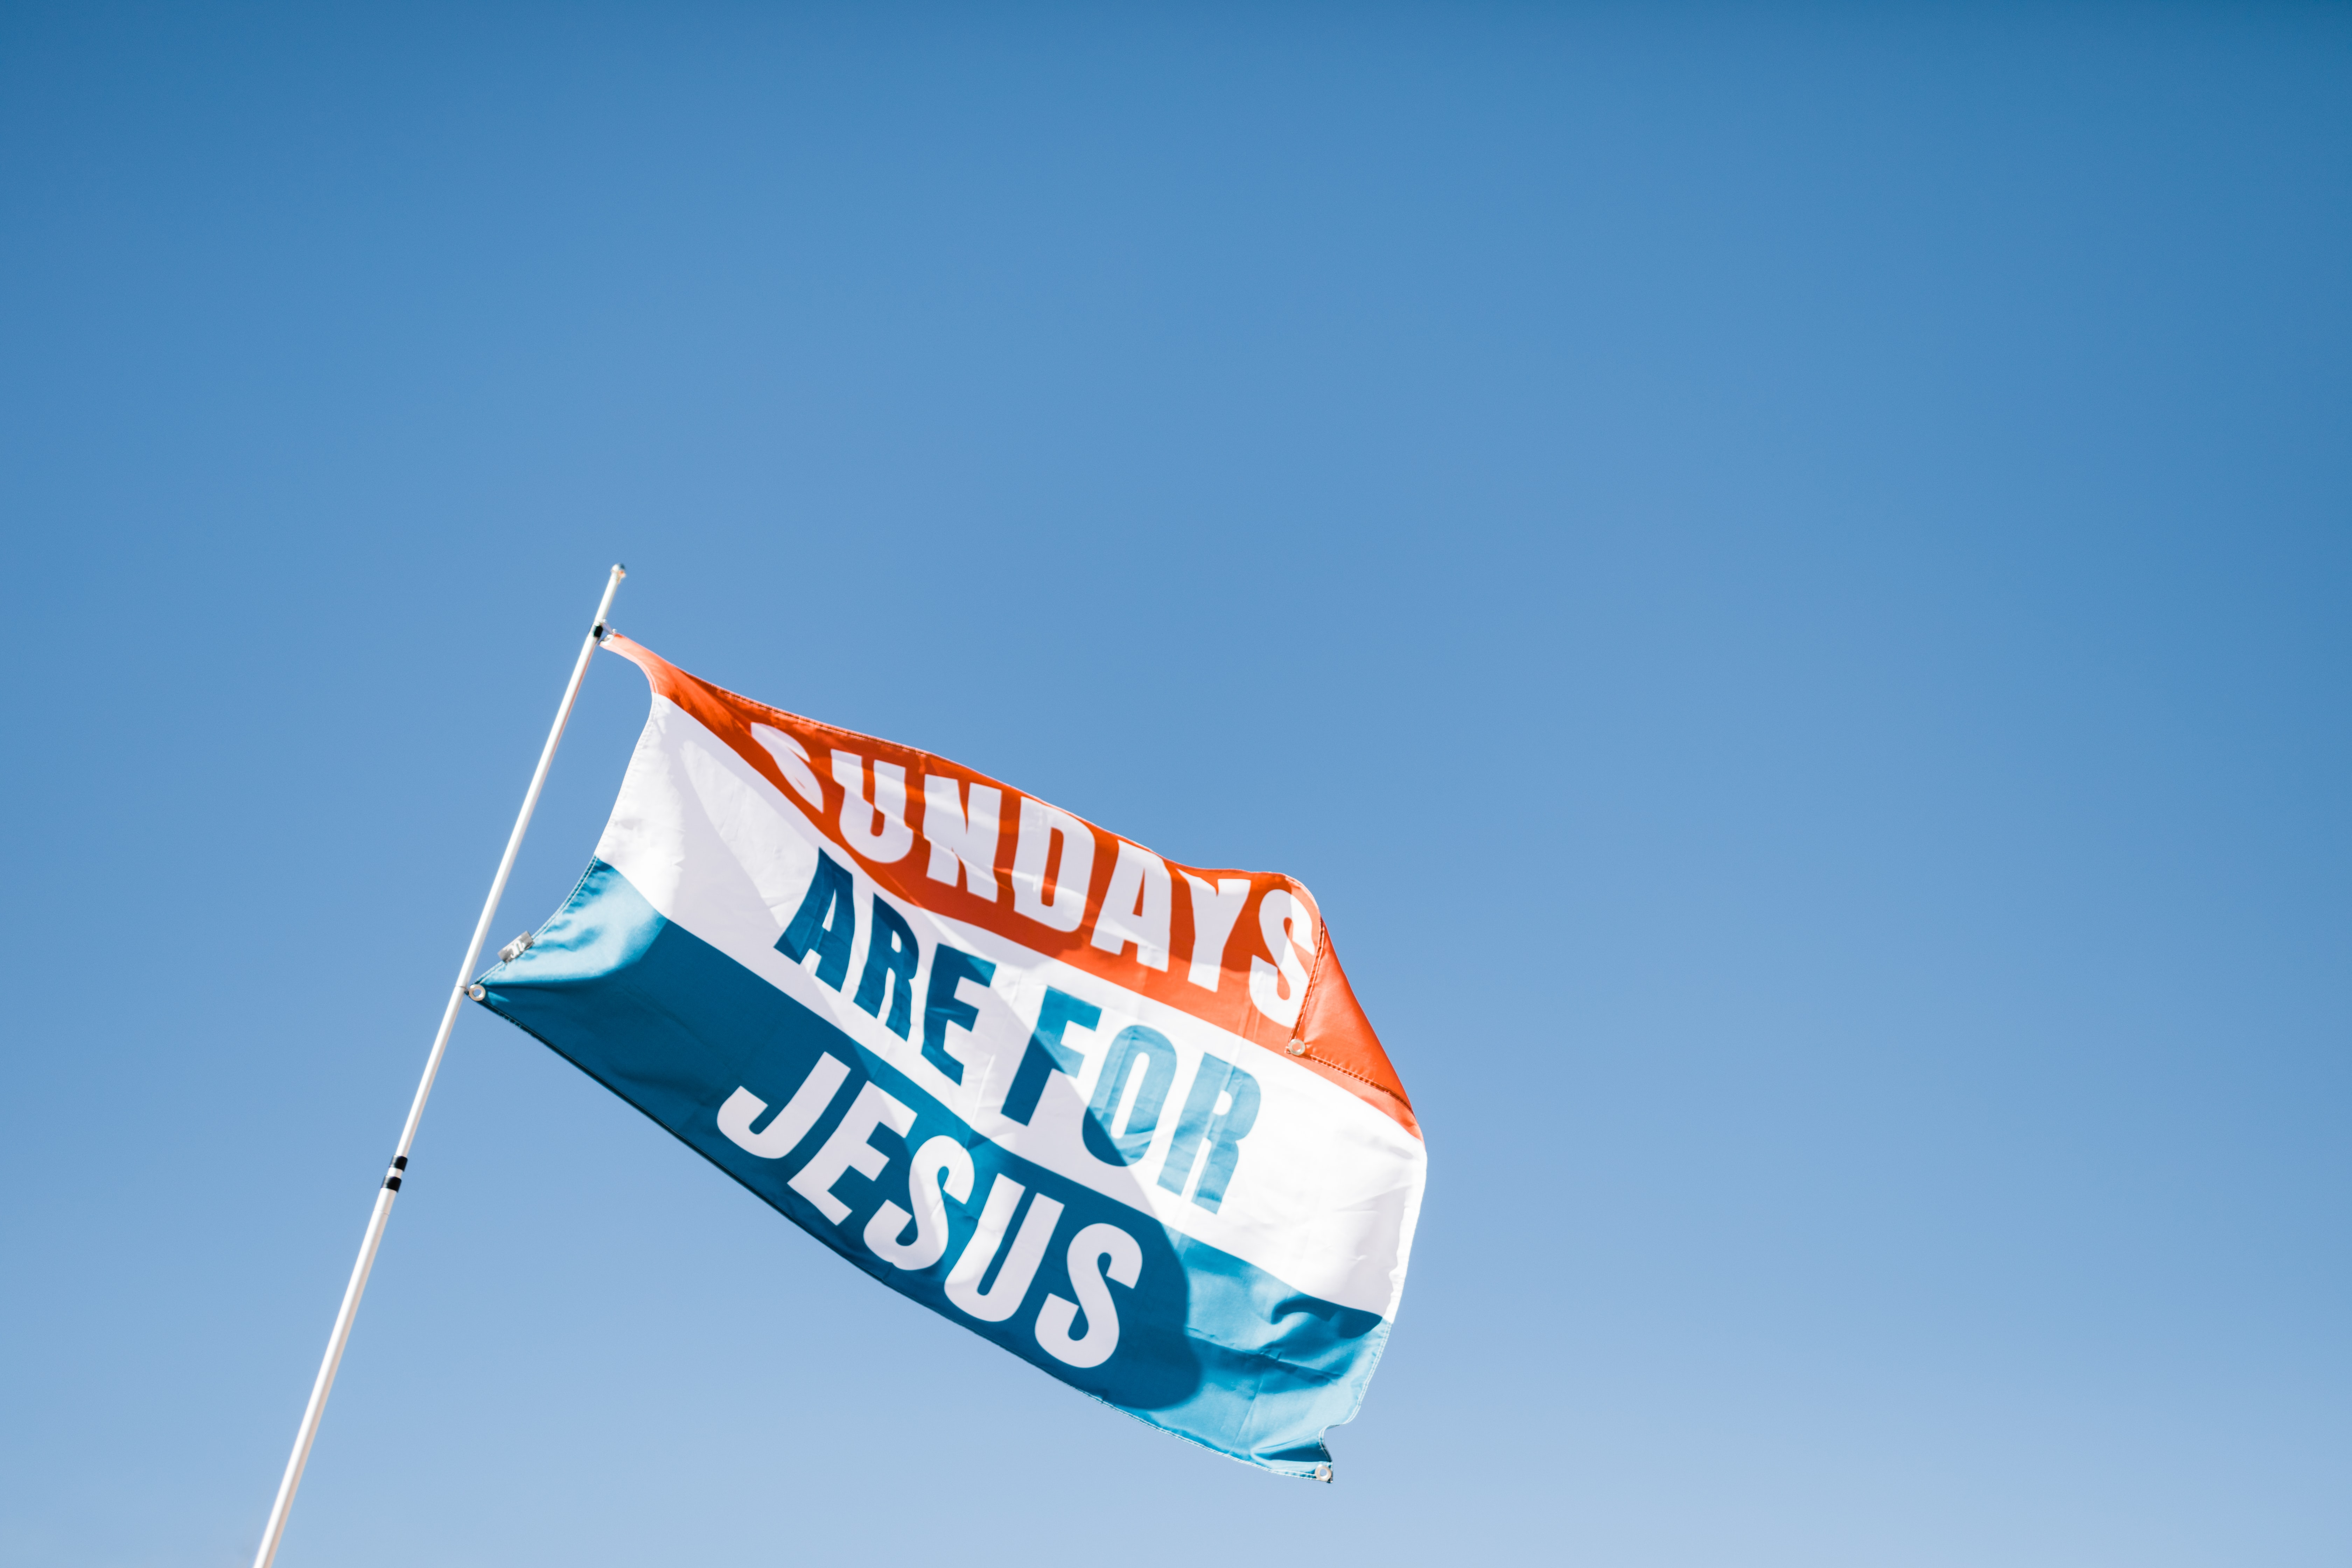 Sundays Are For Jesus flag on top of white flagpole